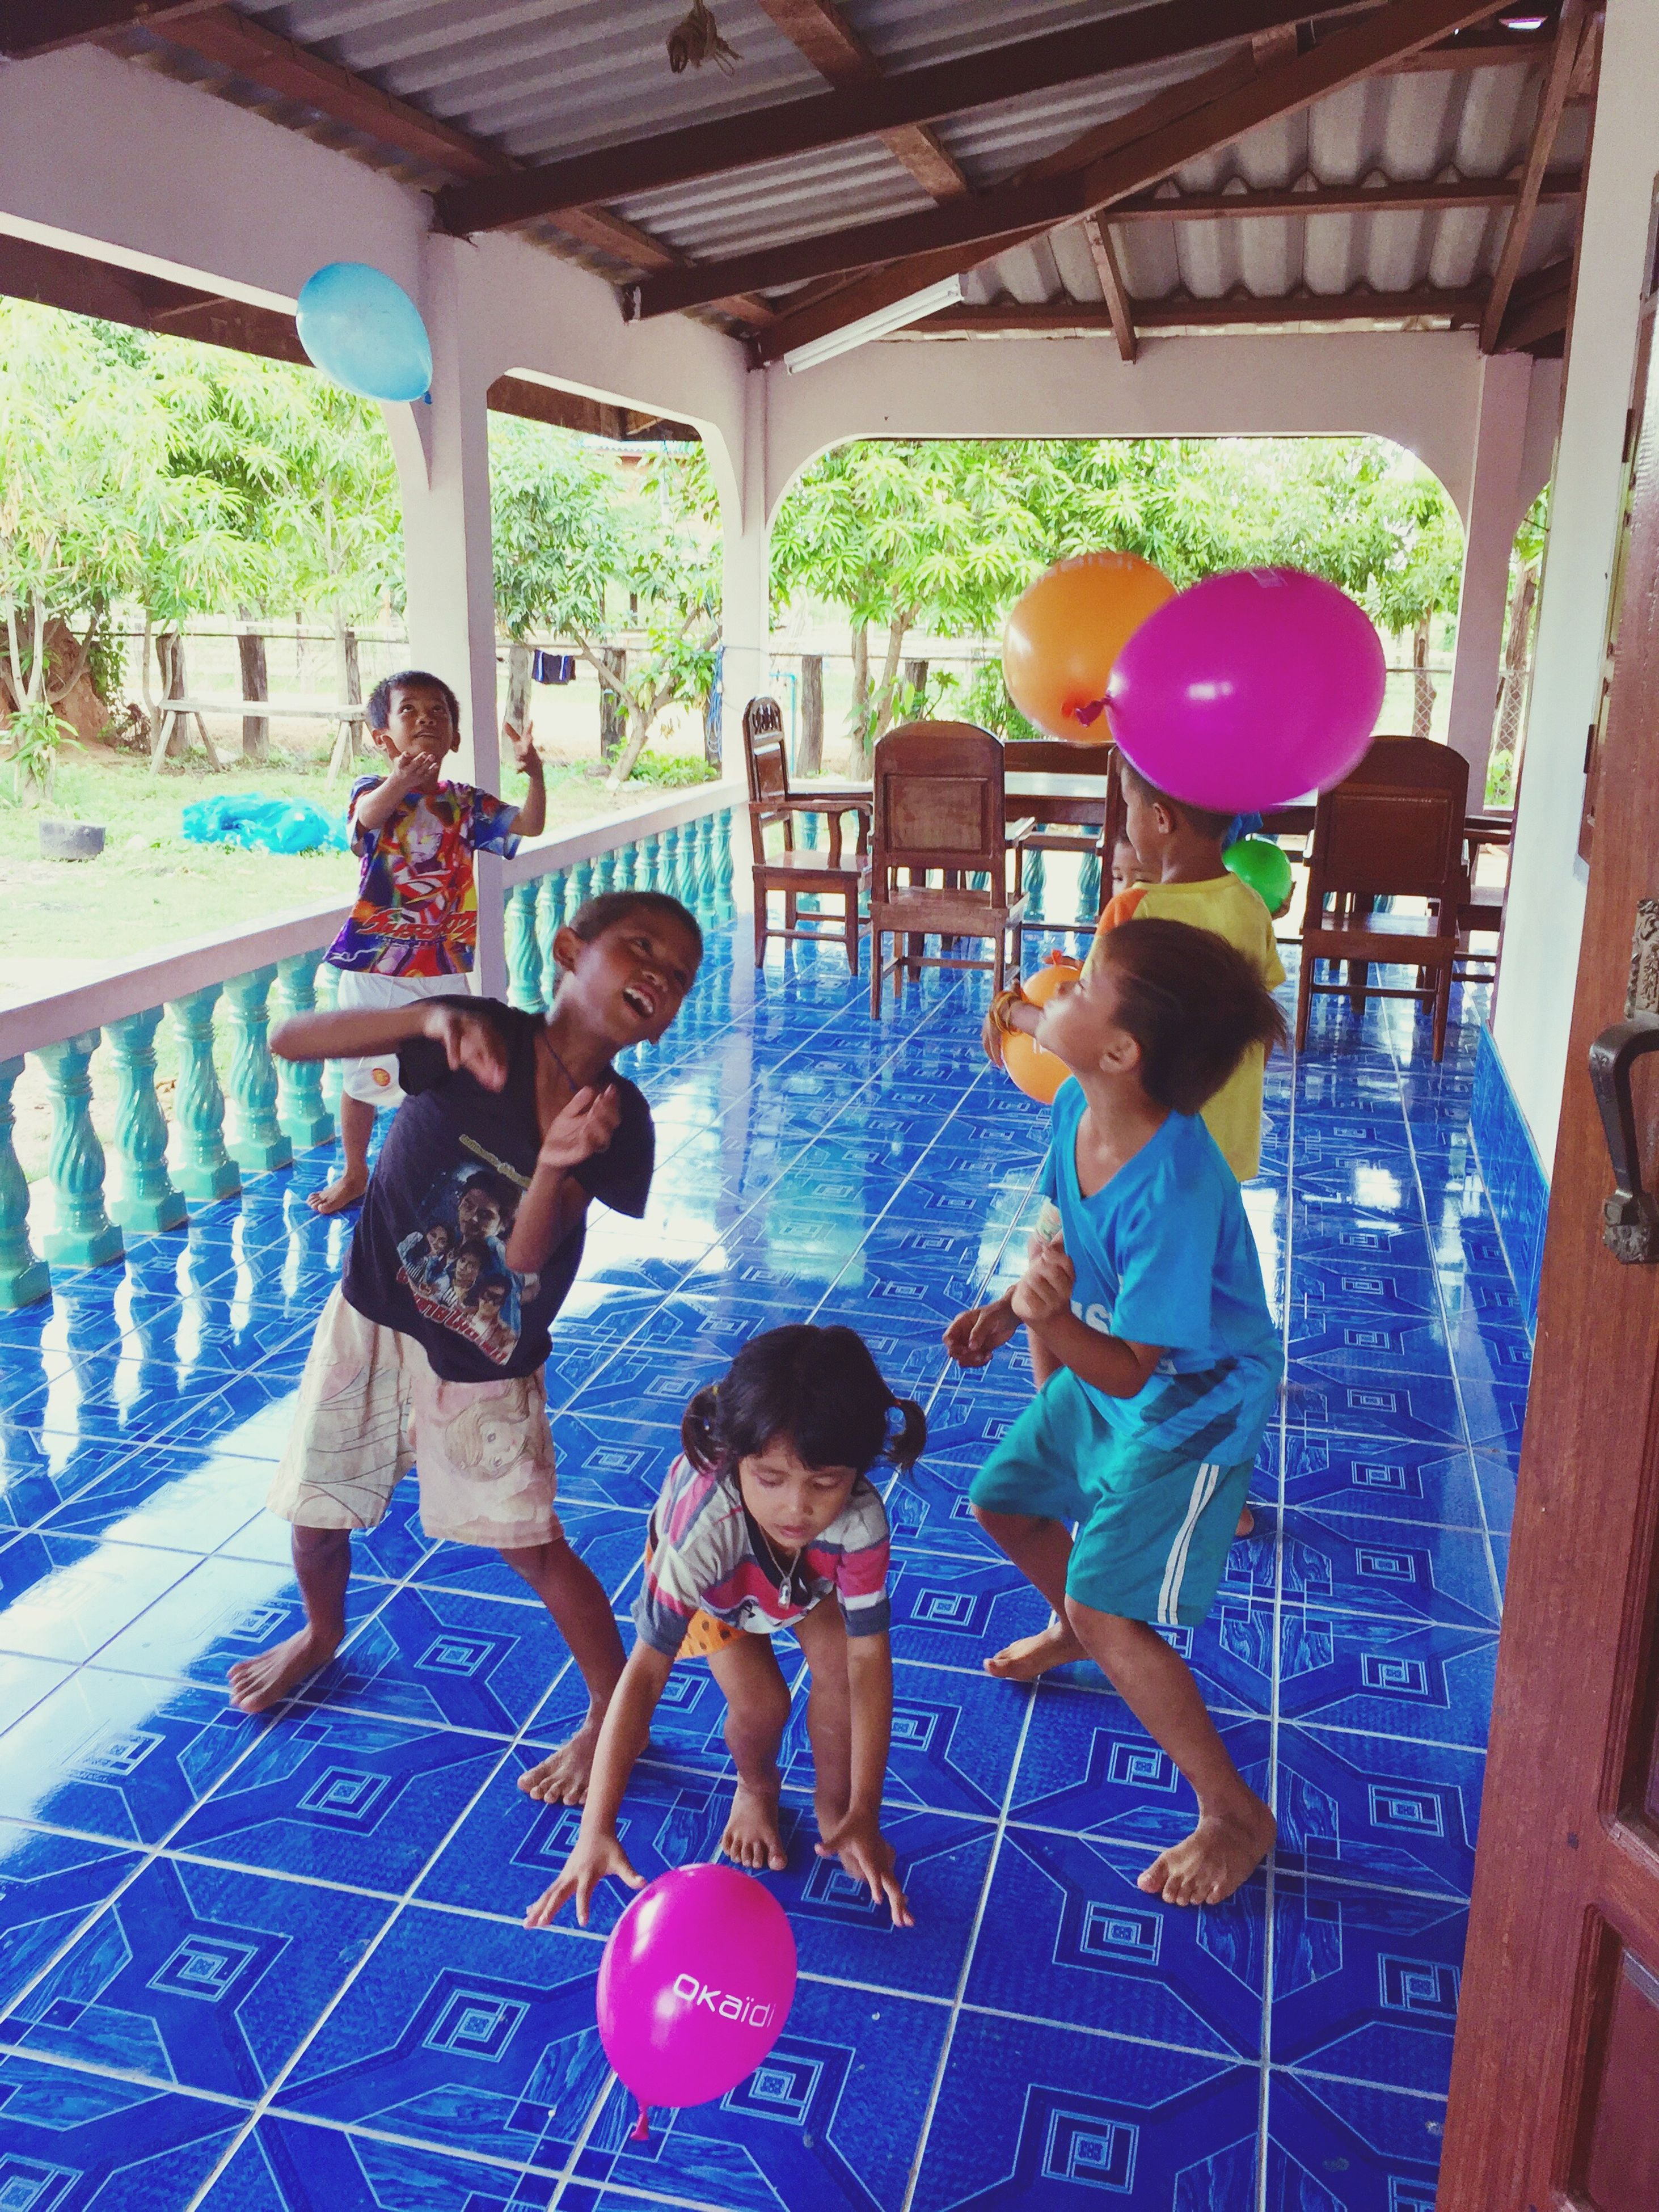 childhood, lifestyles, leisure activity, full length, person, elementary age, girls, casual clothing, playing, fun, boys, enjoyment, happiness, playful, togetherness, cute, playground, smiling